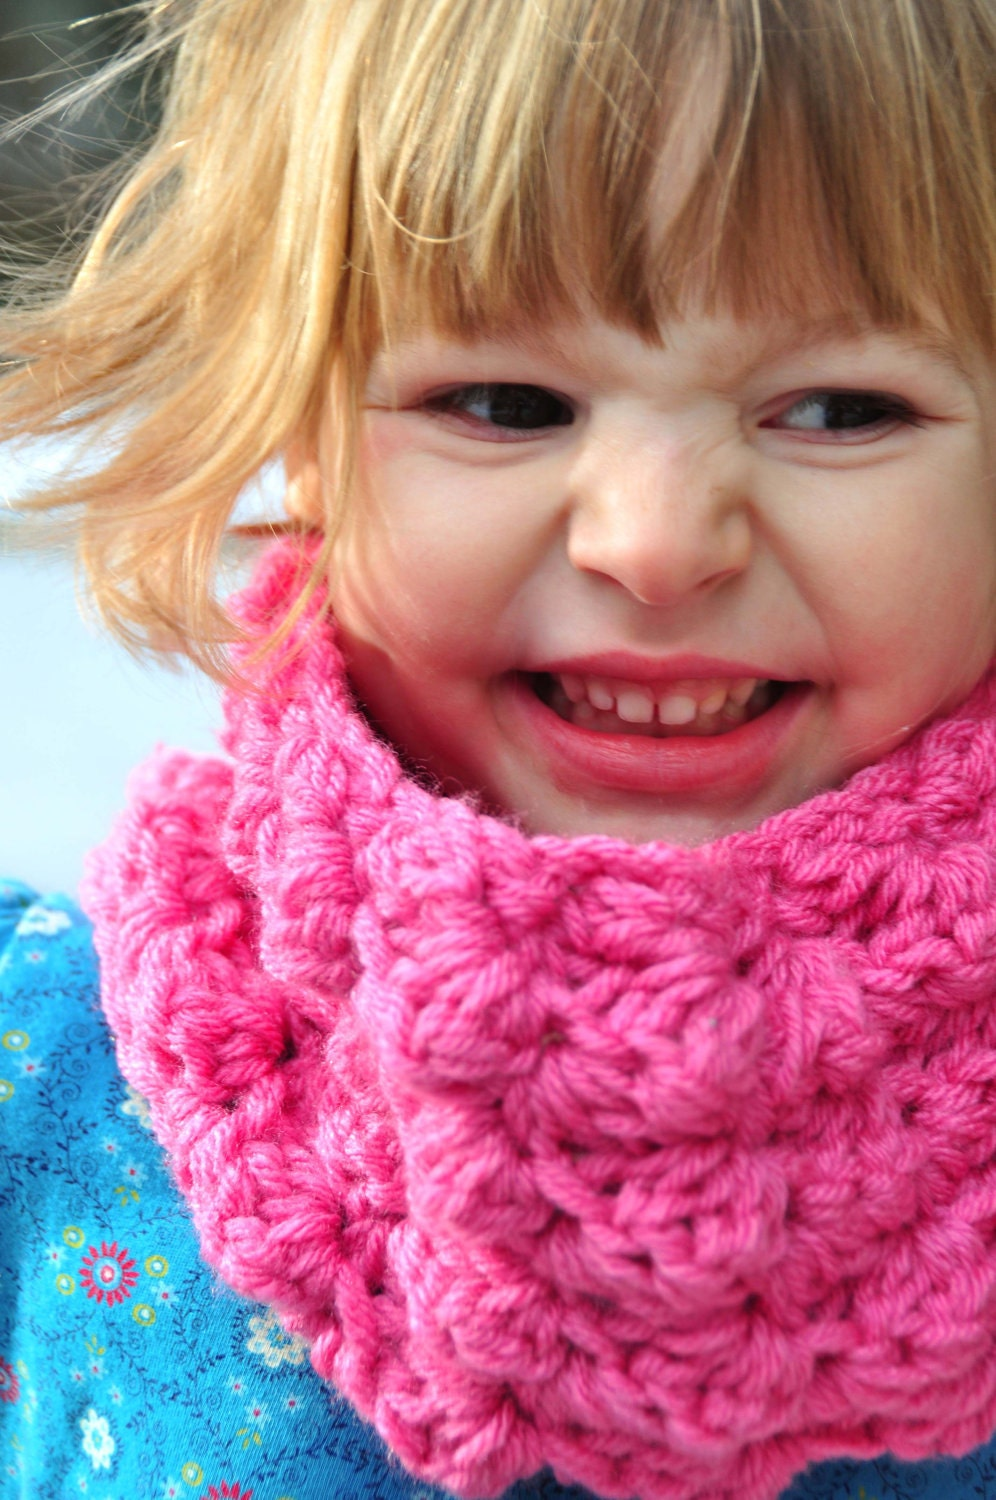 Childrens Scarf Pattern: Crochet Sedge Stitch Cowl PDF